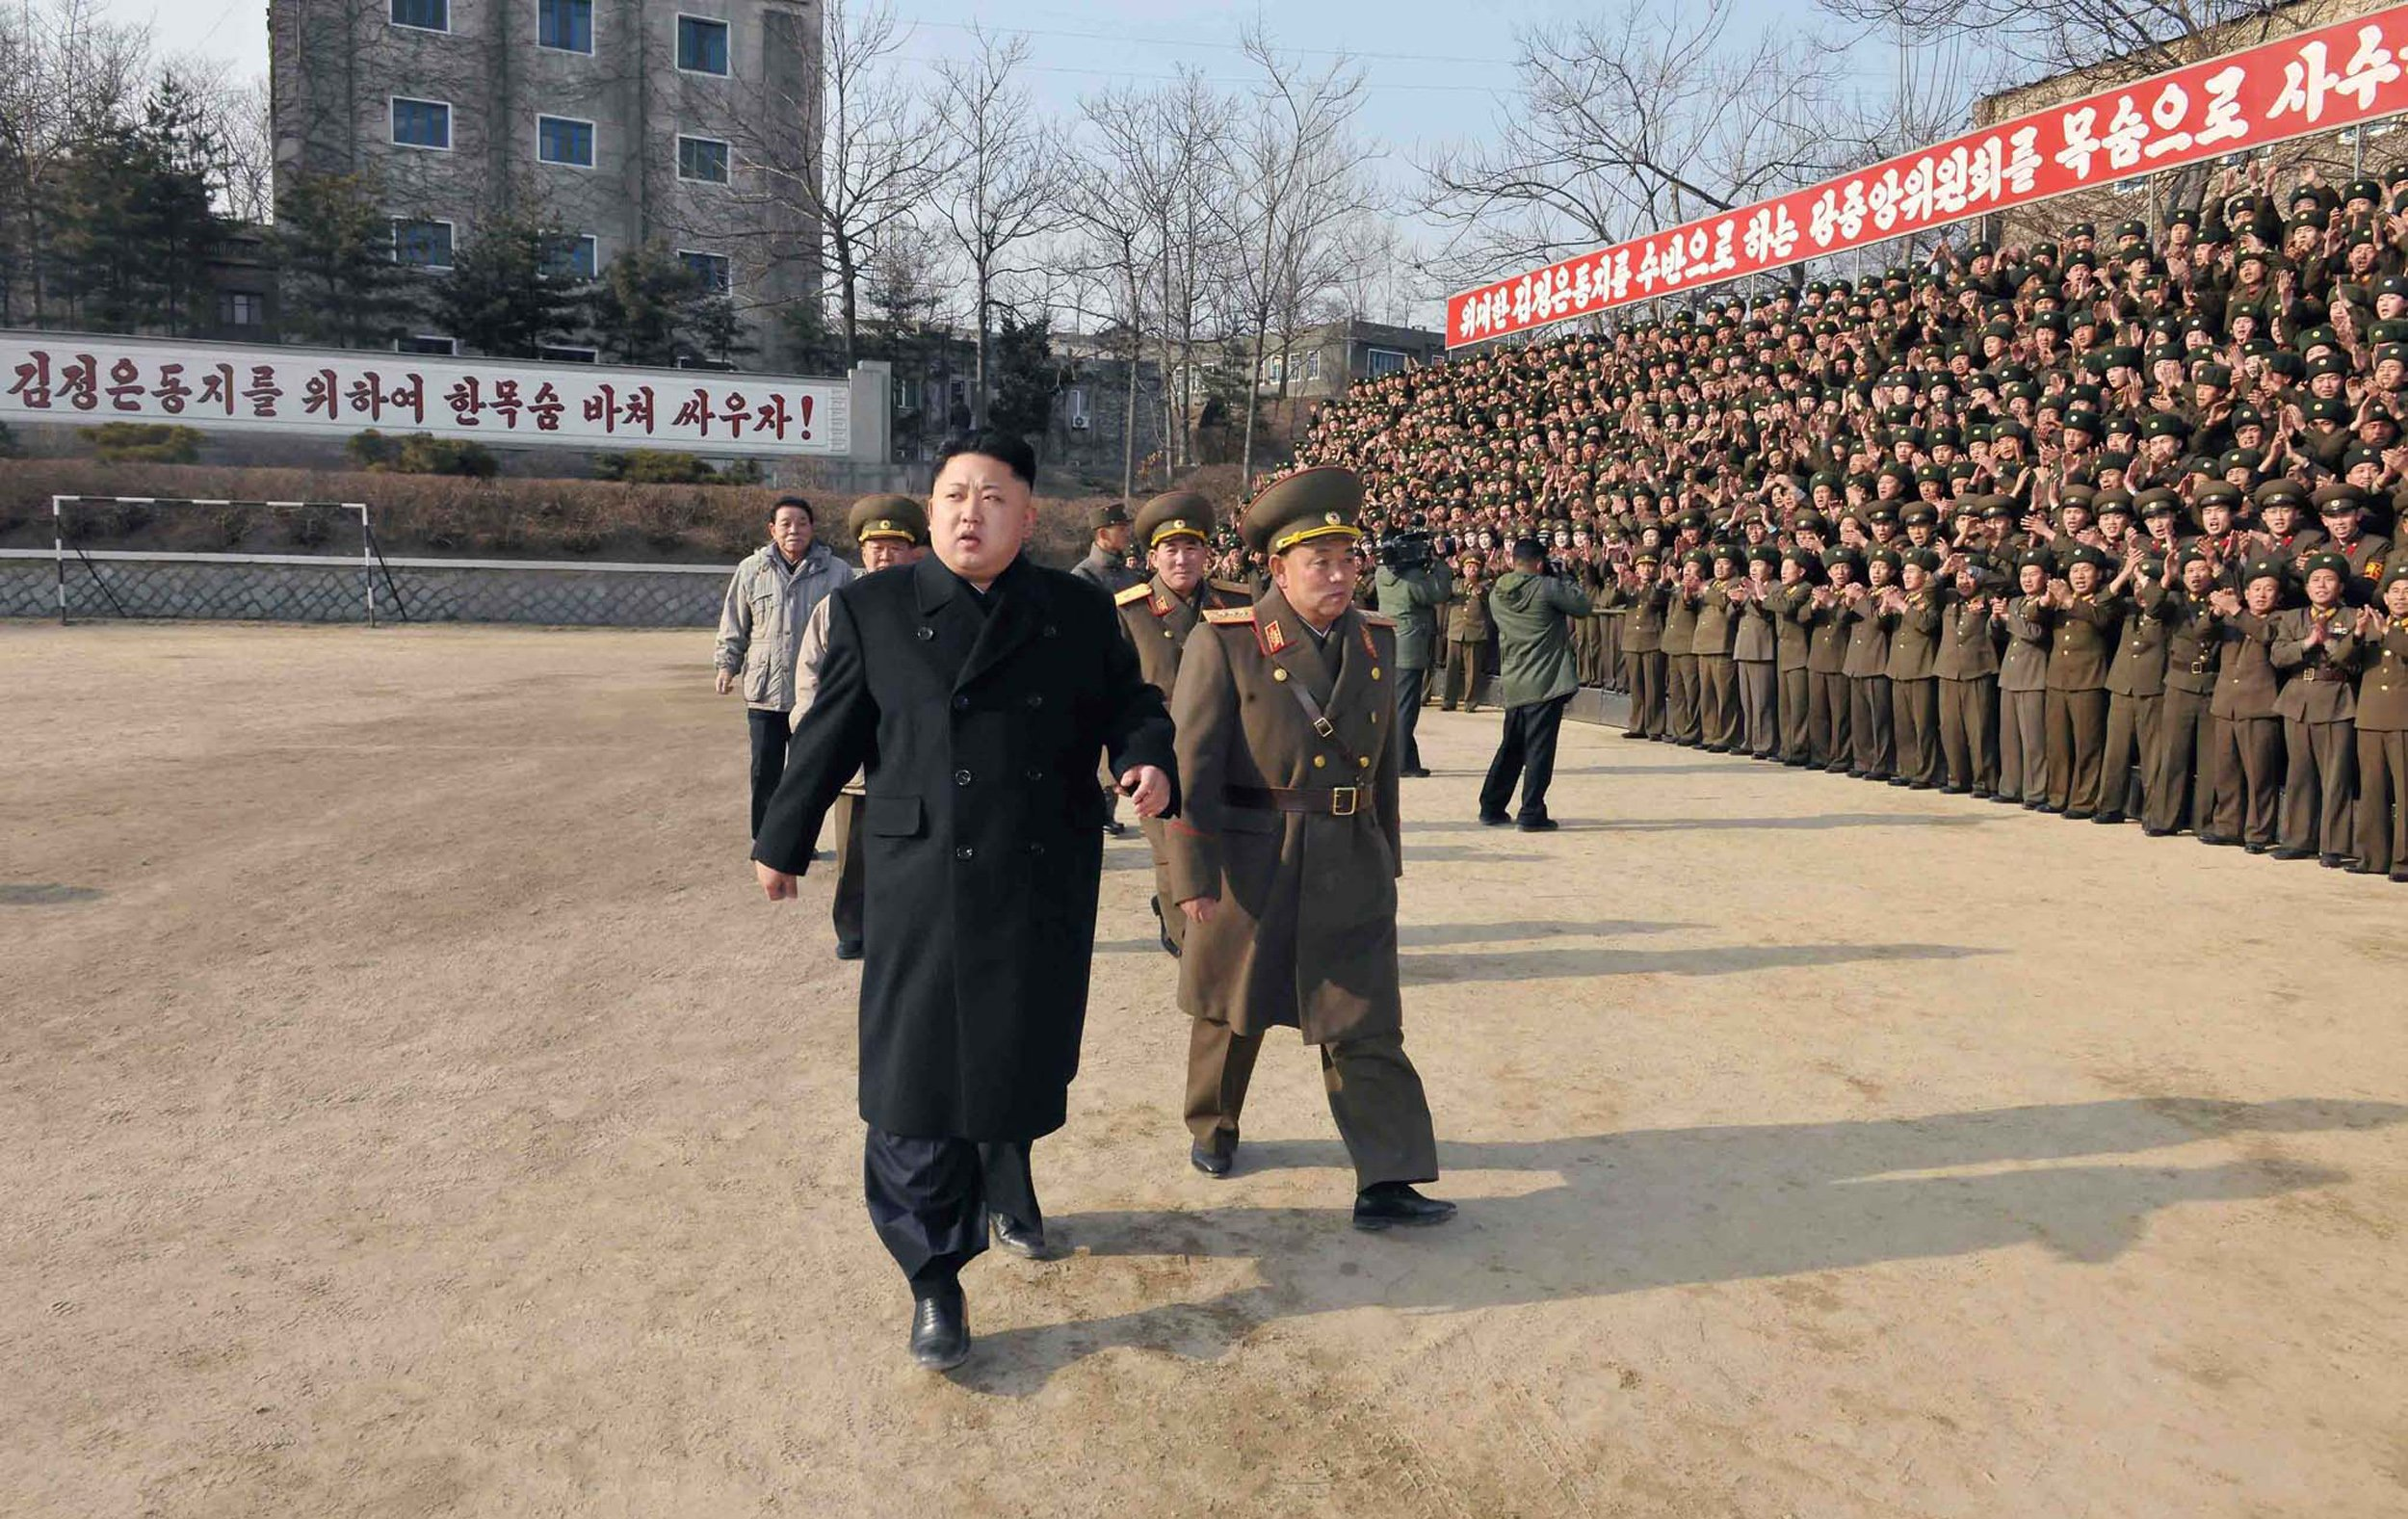 U.S. military should 'choke' North Korea to 'submission,' retired Navy lieutenant says